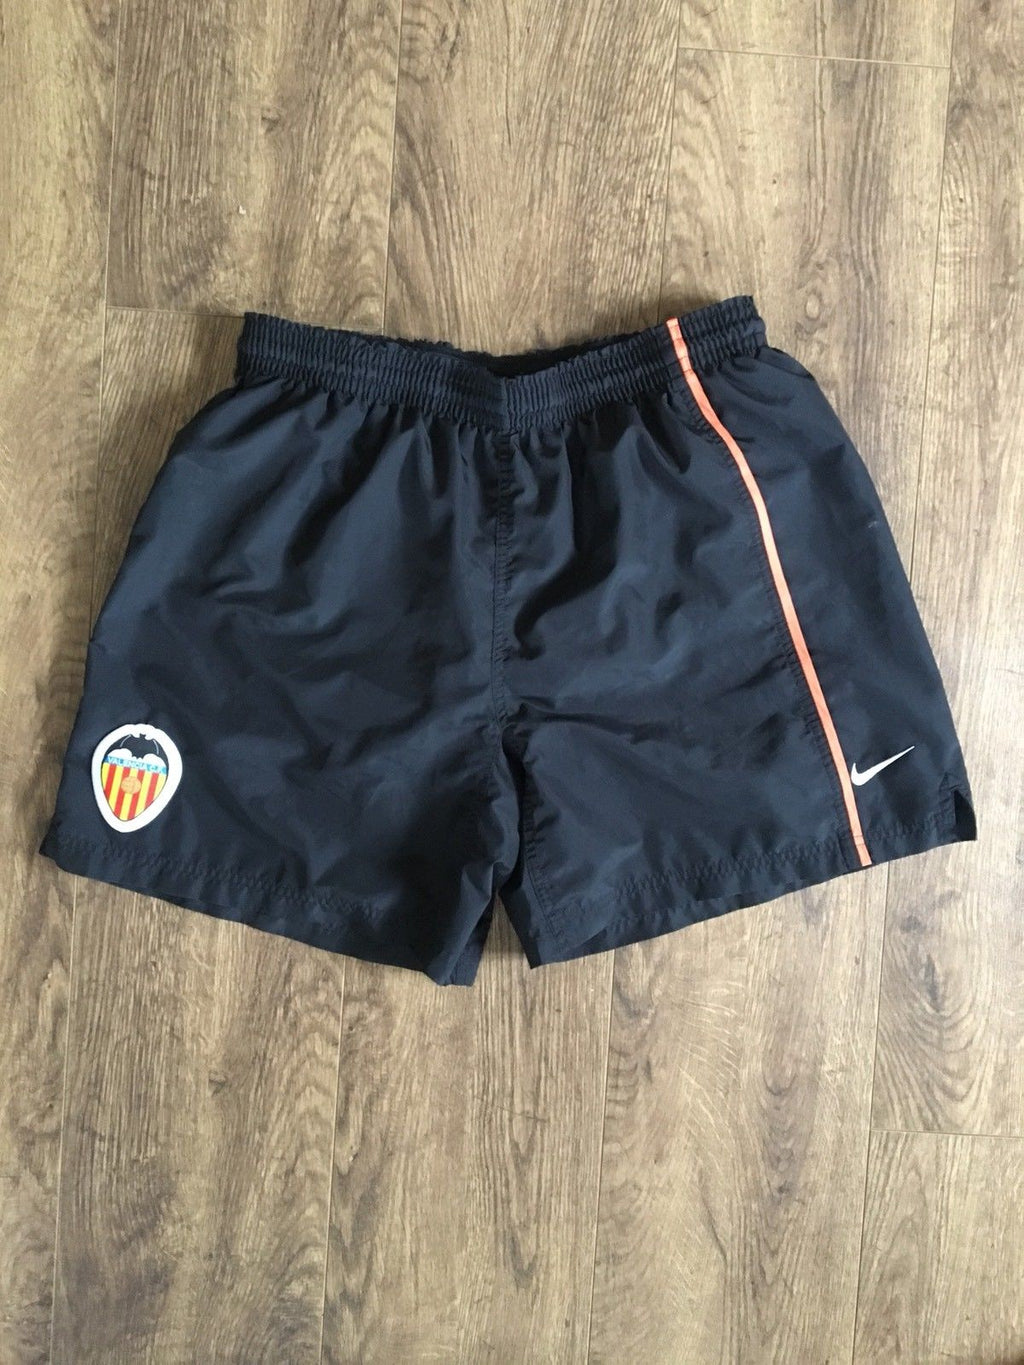 2002/03 Valencia Home Shorts (L) 8.5/10